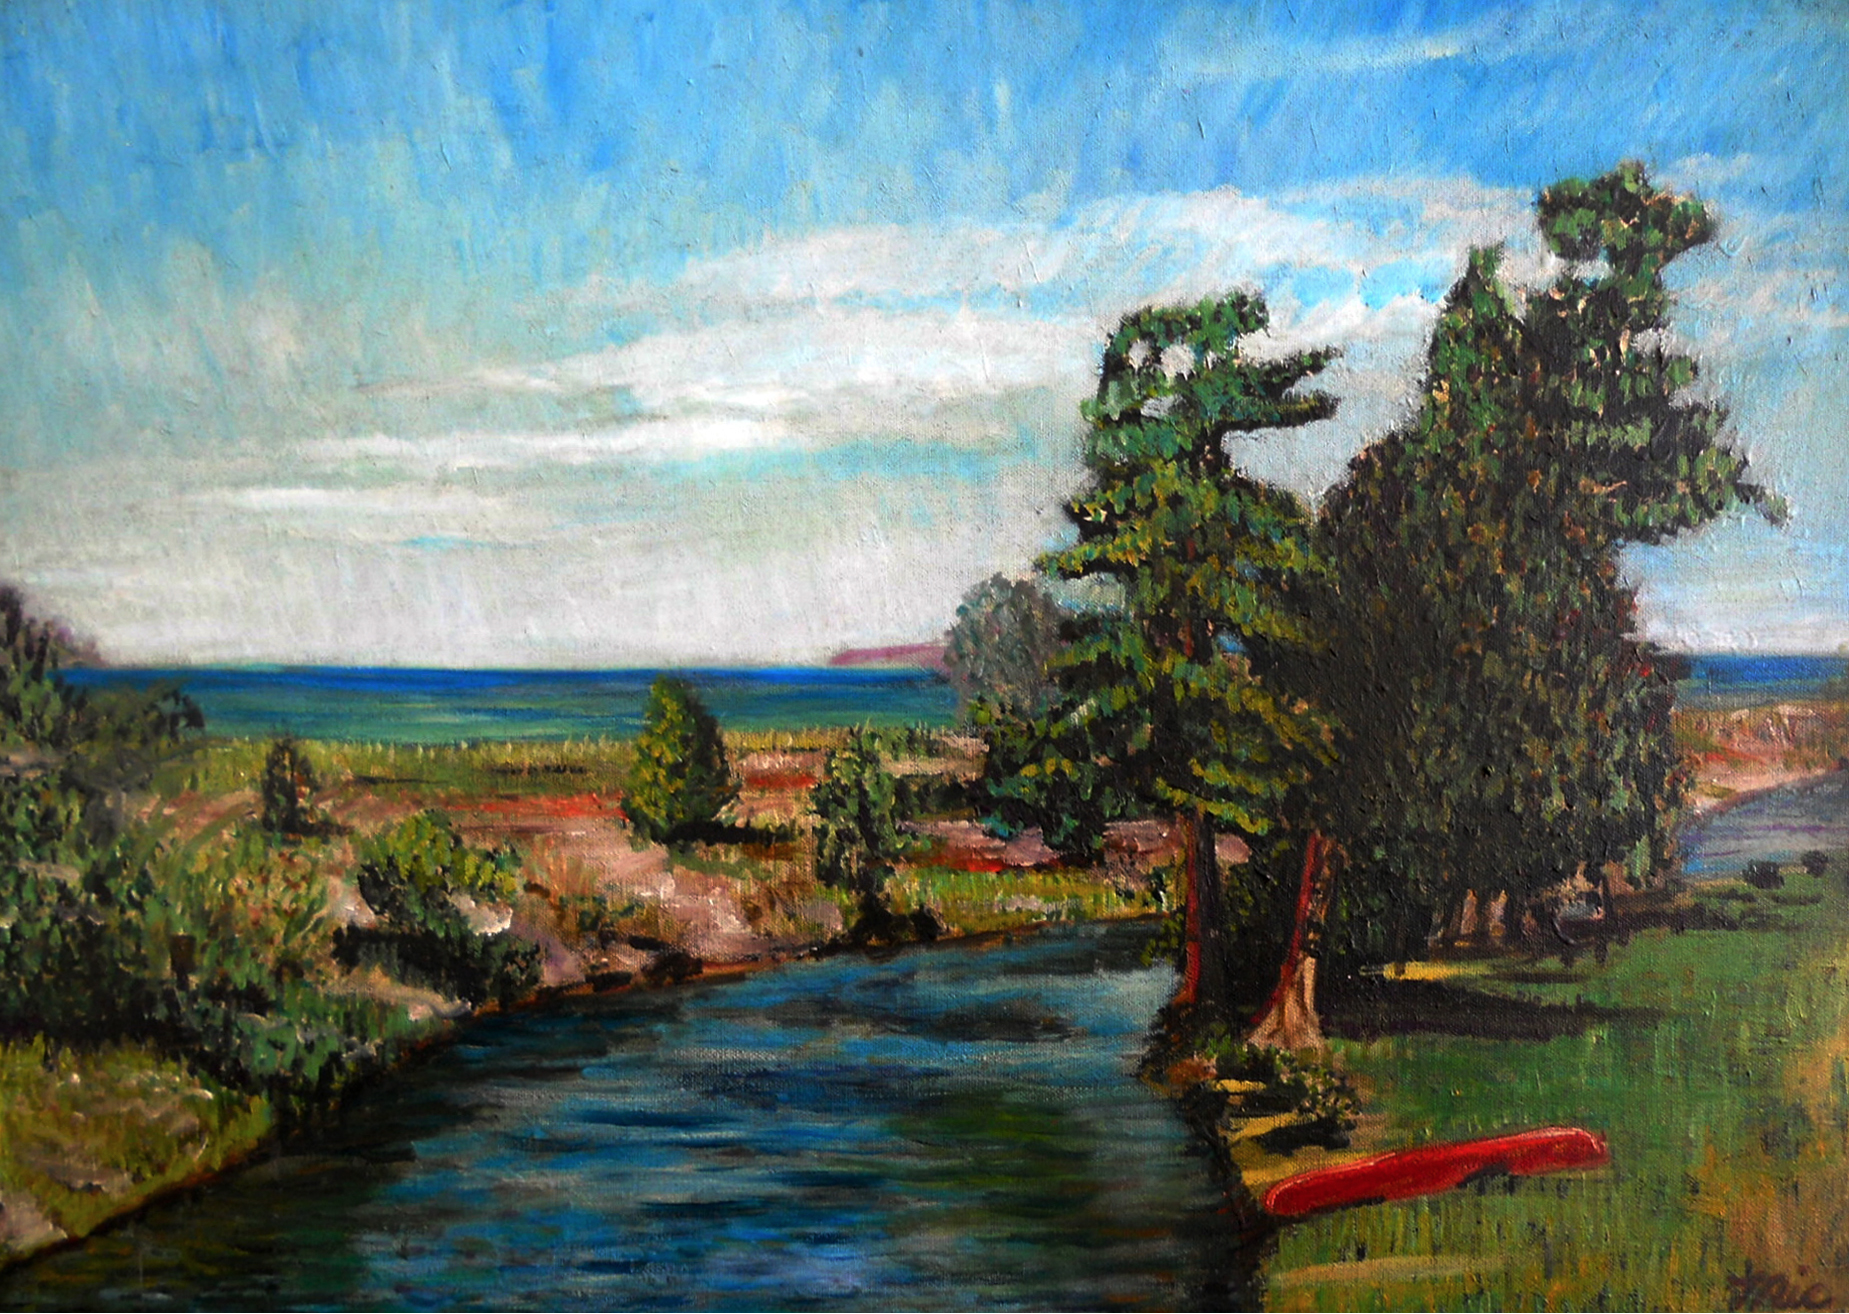 """Crystal River at The Homestead"" Glen Arbor, Michigan - Oil on panel, Private collection ""unknown""Giclee Limited Edition and canvas prints are available. Please visit the prints gallery."